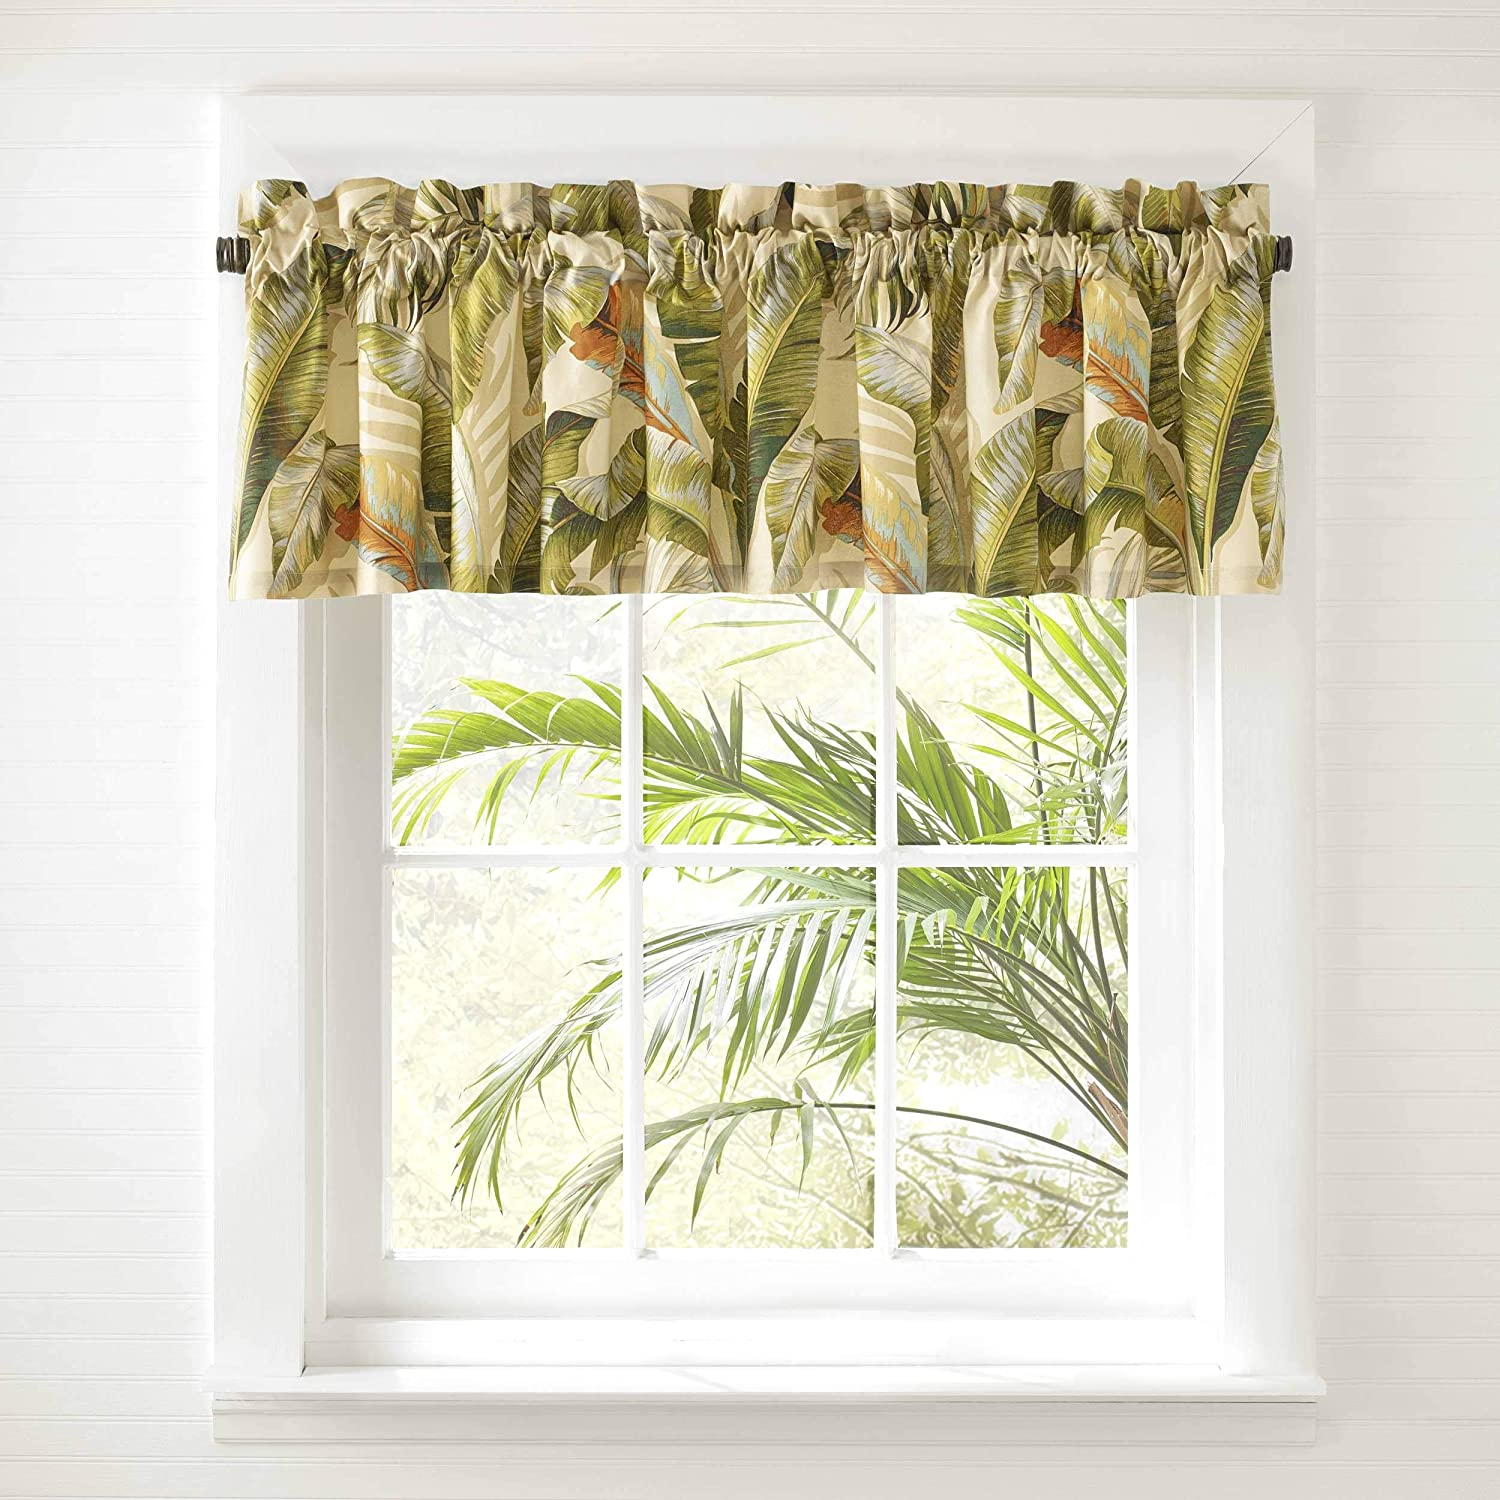 Tommy Bahama Palmiers Valance, 72 x 15, Green